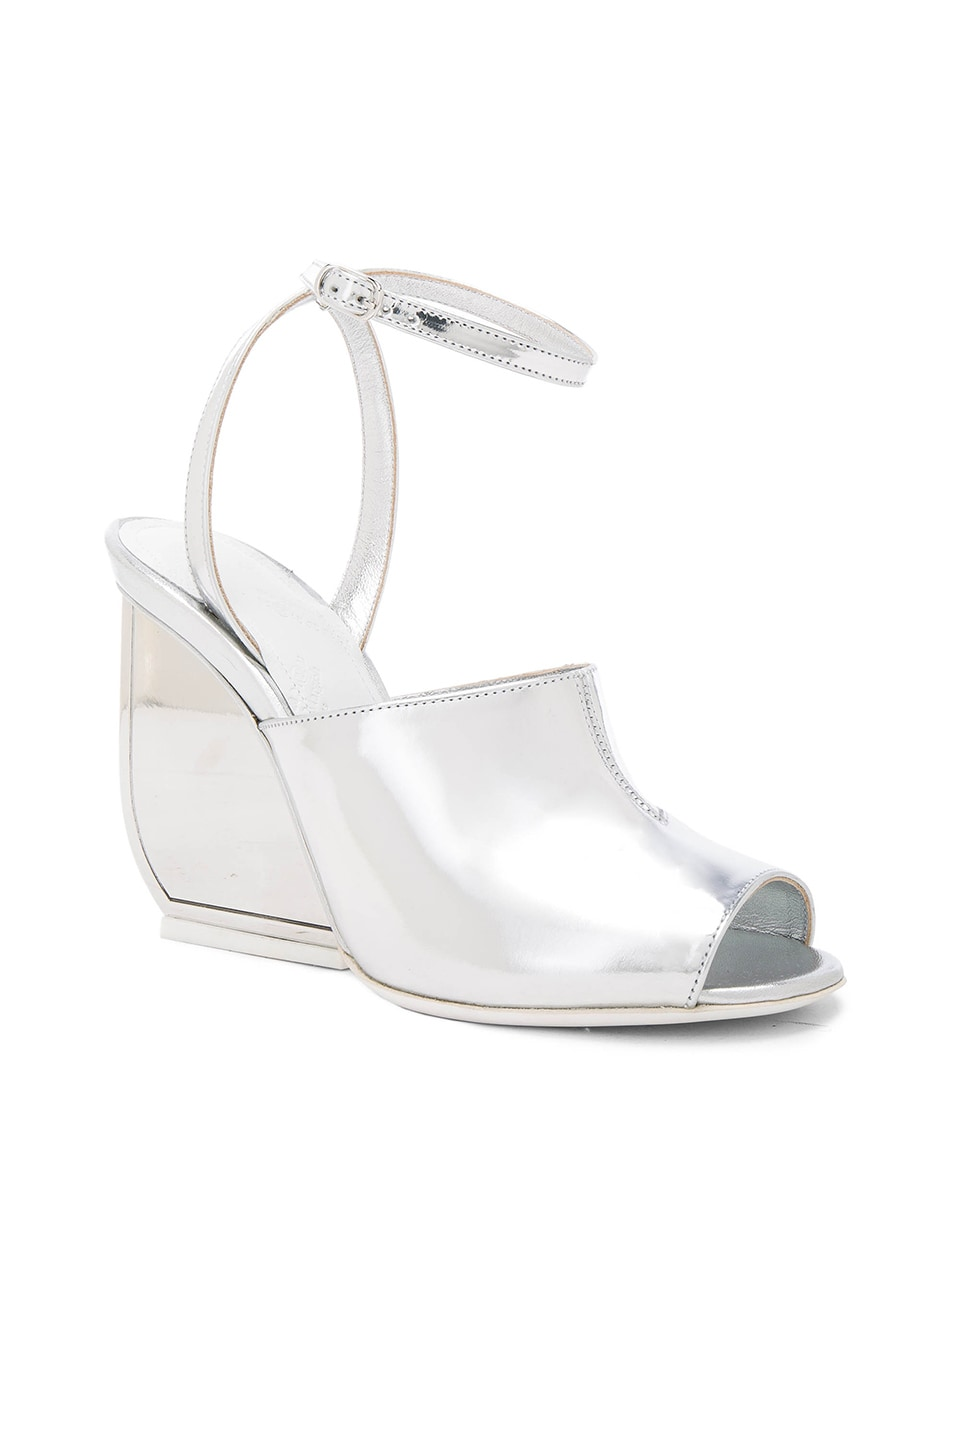 Image 2 of Maison Margiela Mirror Leather Heels in Silver